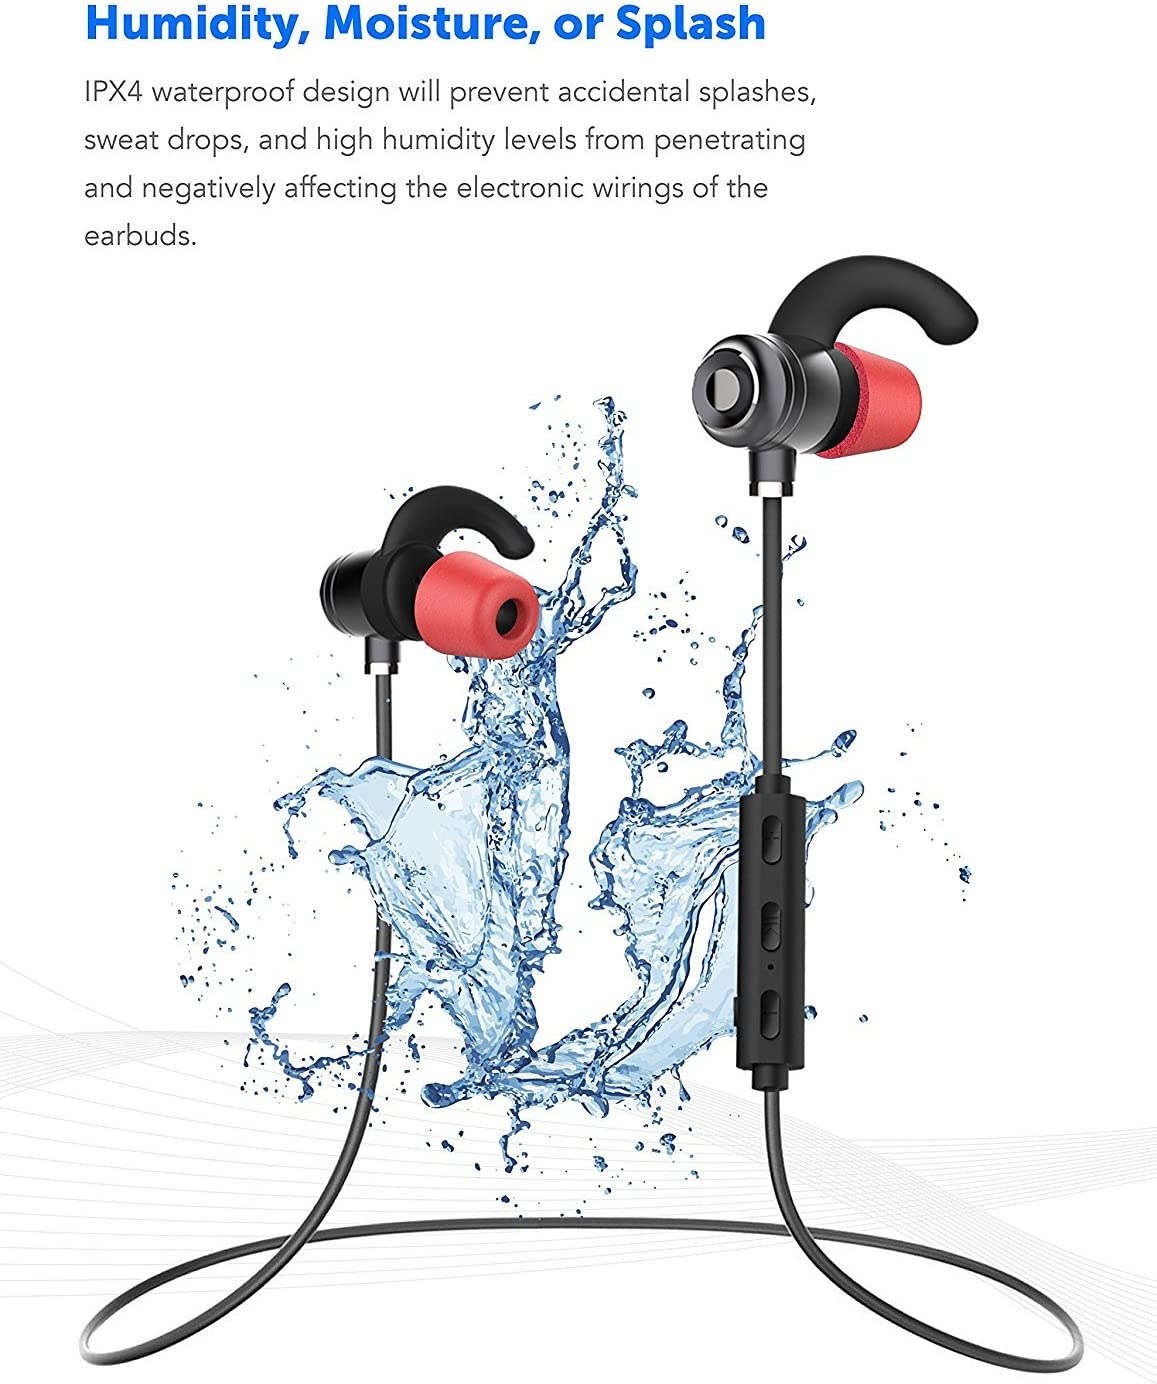 Samsung Galaxy On7 Bluetooth Headset In-Ear Running Earbuds IPX4 Waterproof with Mic Stereo Earphones Samsung,Google Pixel,LG CVC 6.0 Noise Cancellation works with Apple